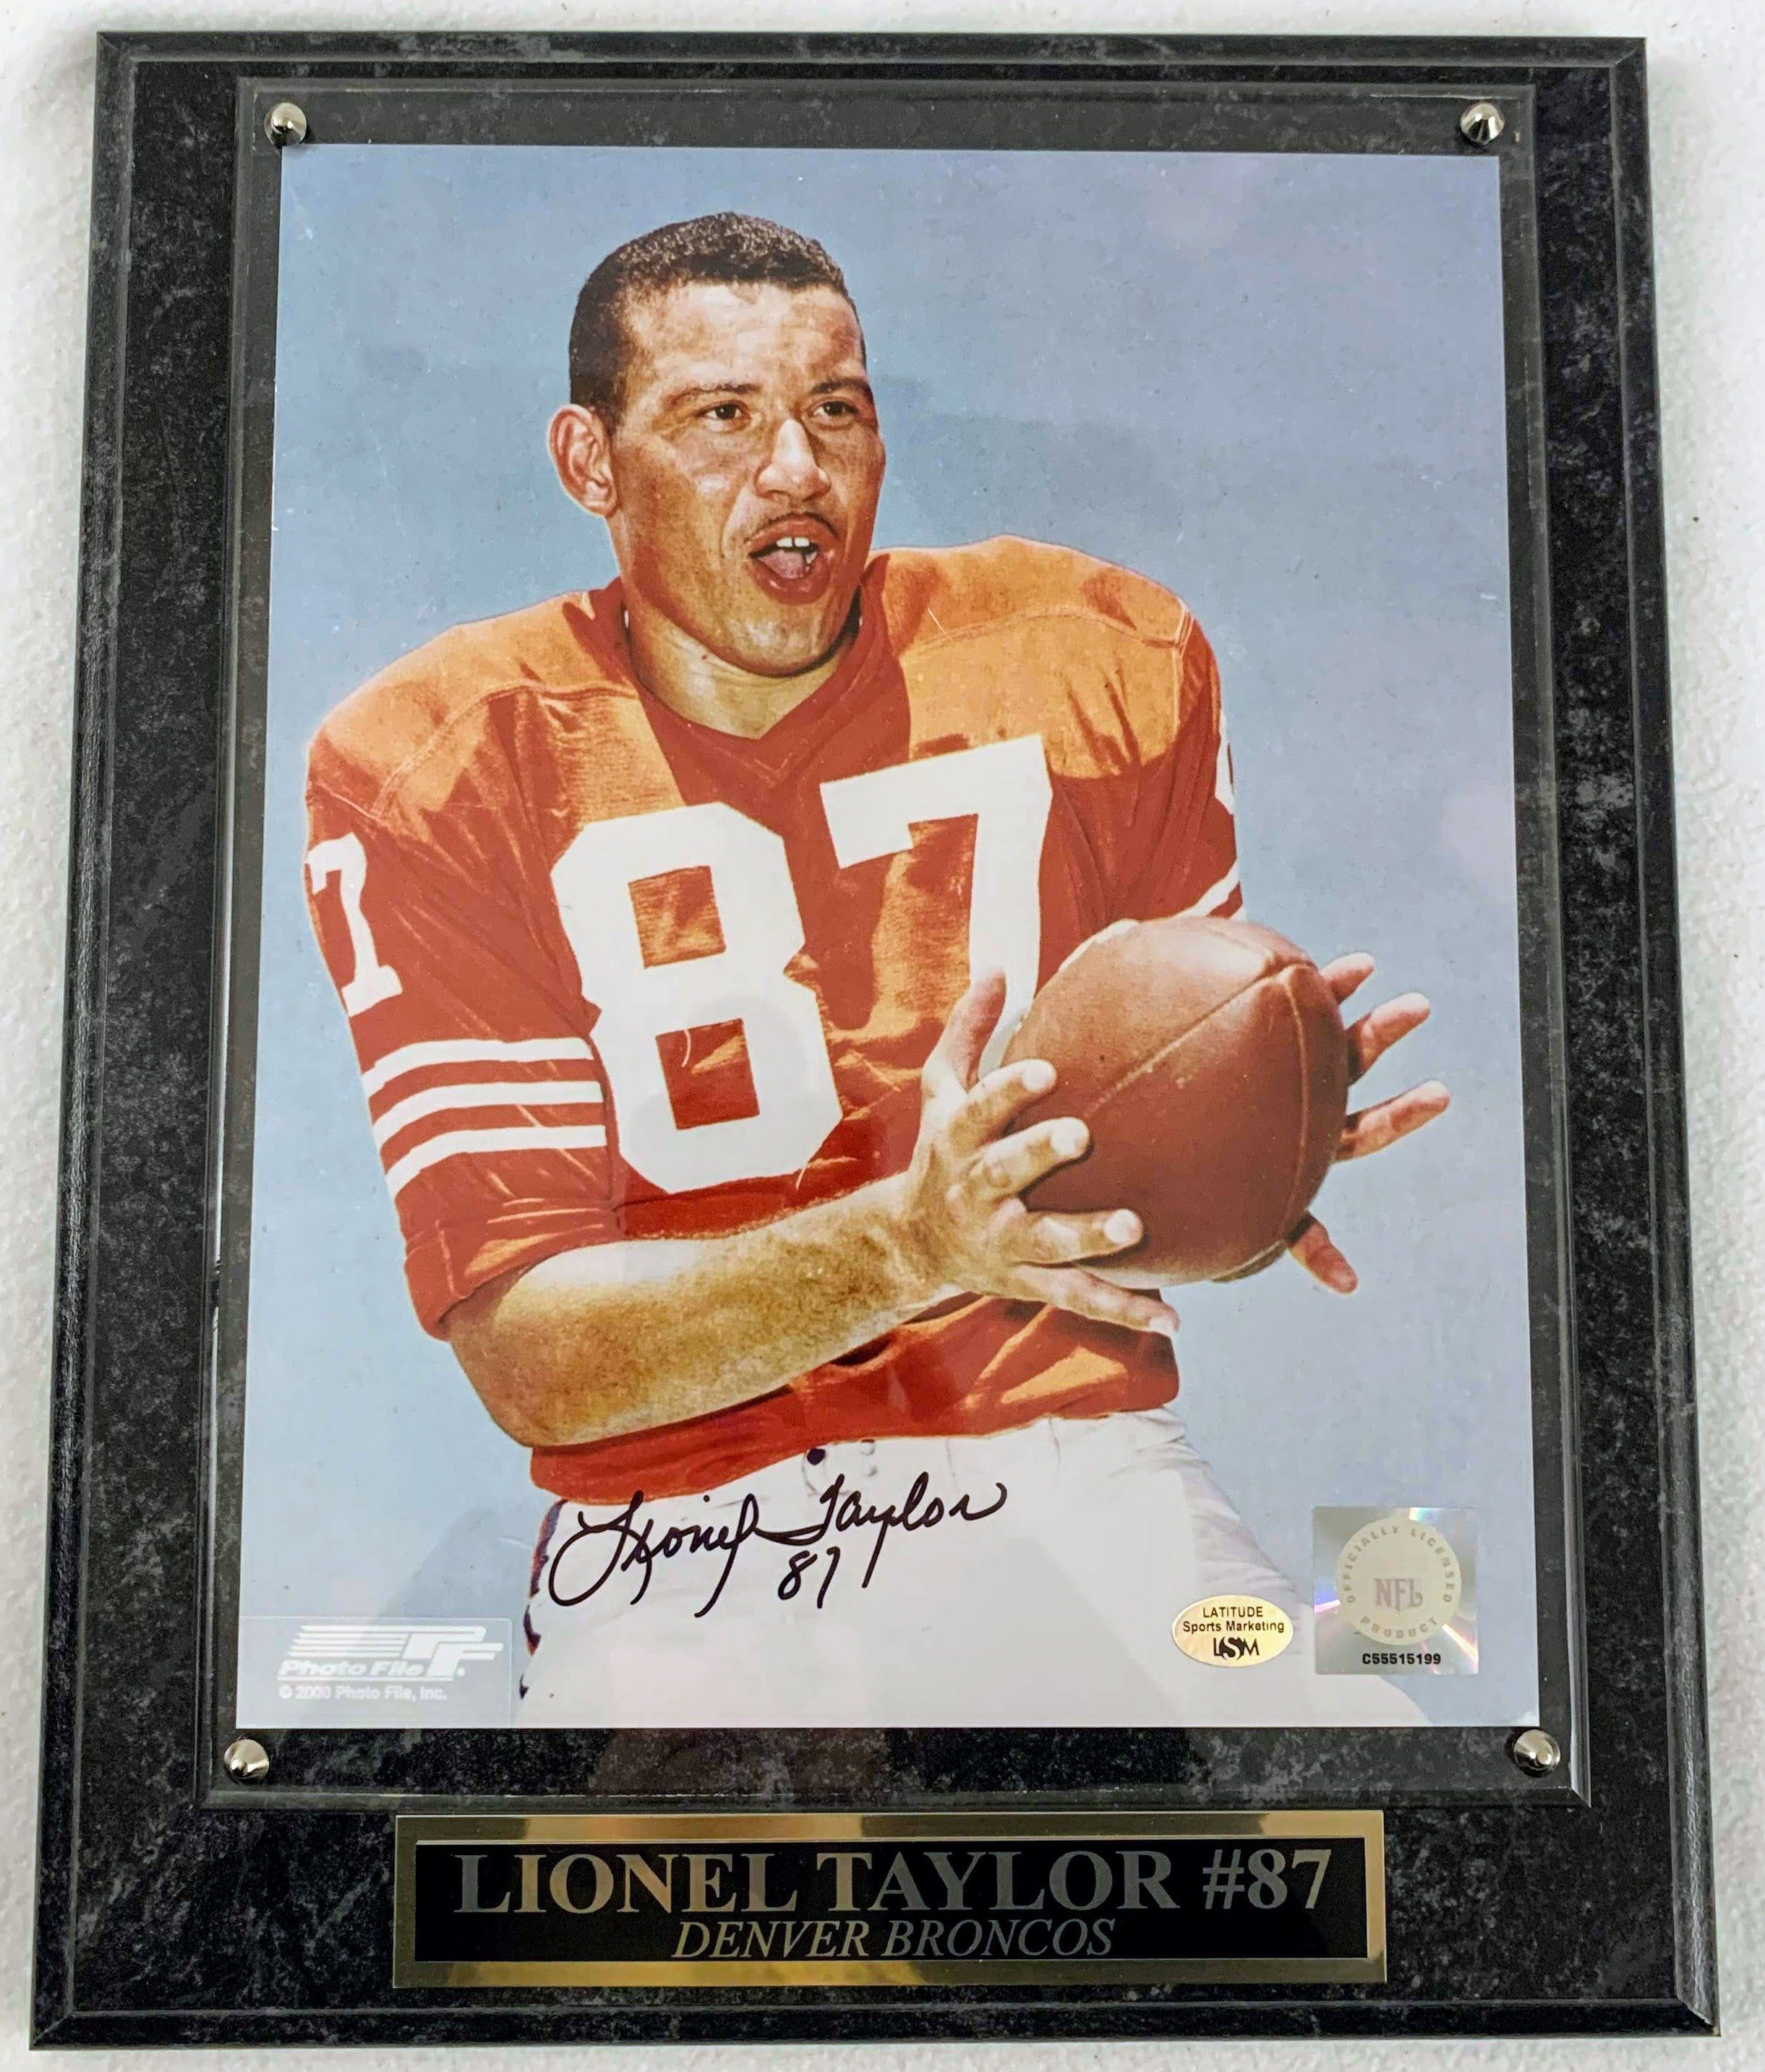 Lionel Taylor 8x10 Photo w/ Plaque - Latitude Sports Marketing